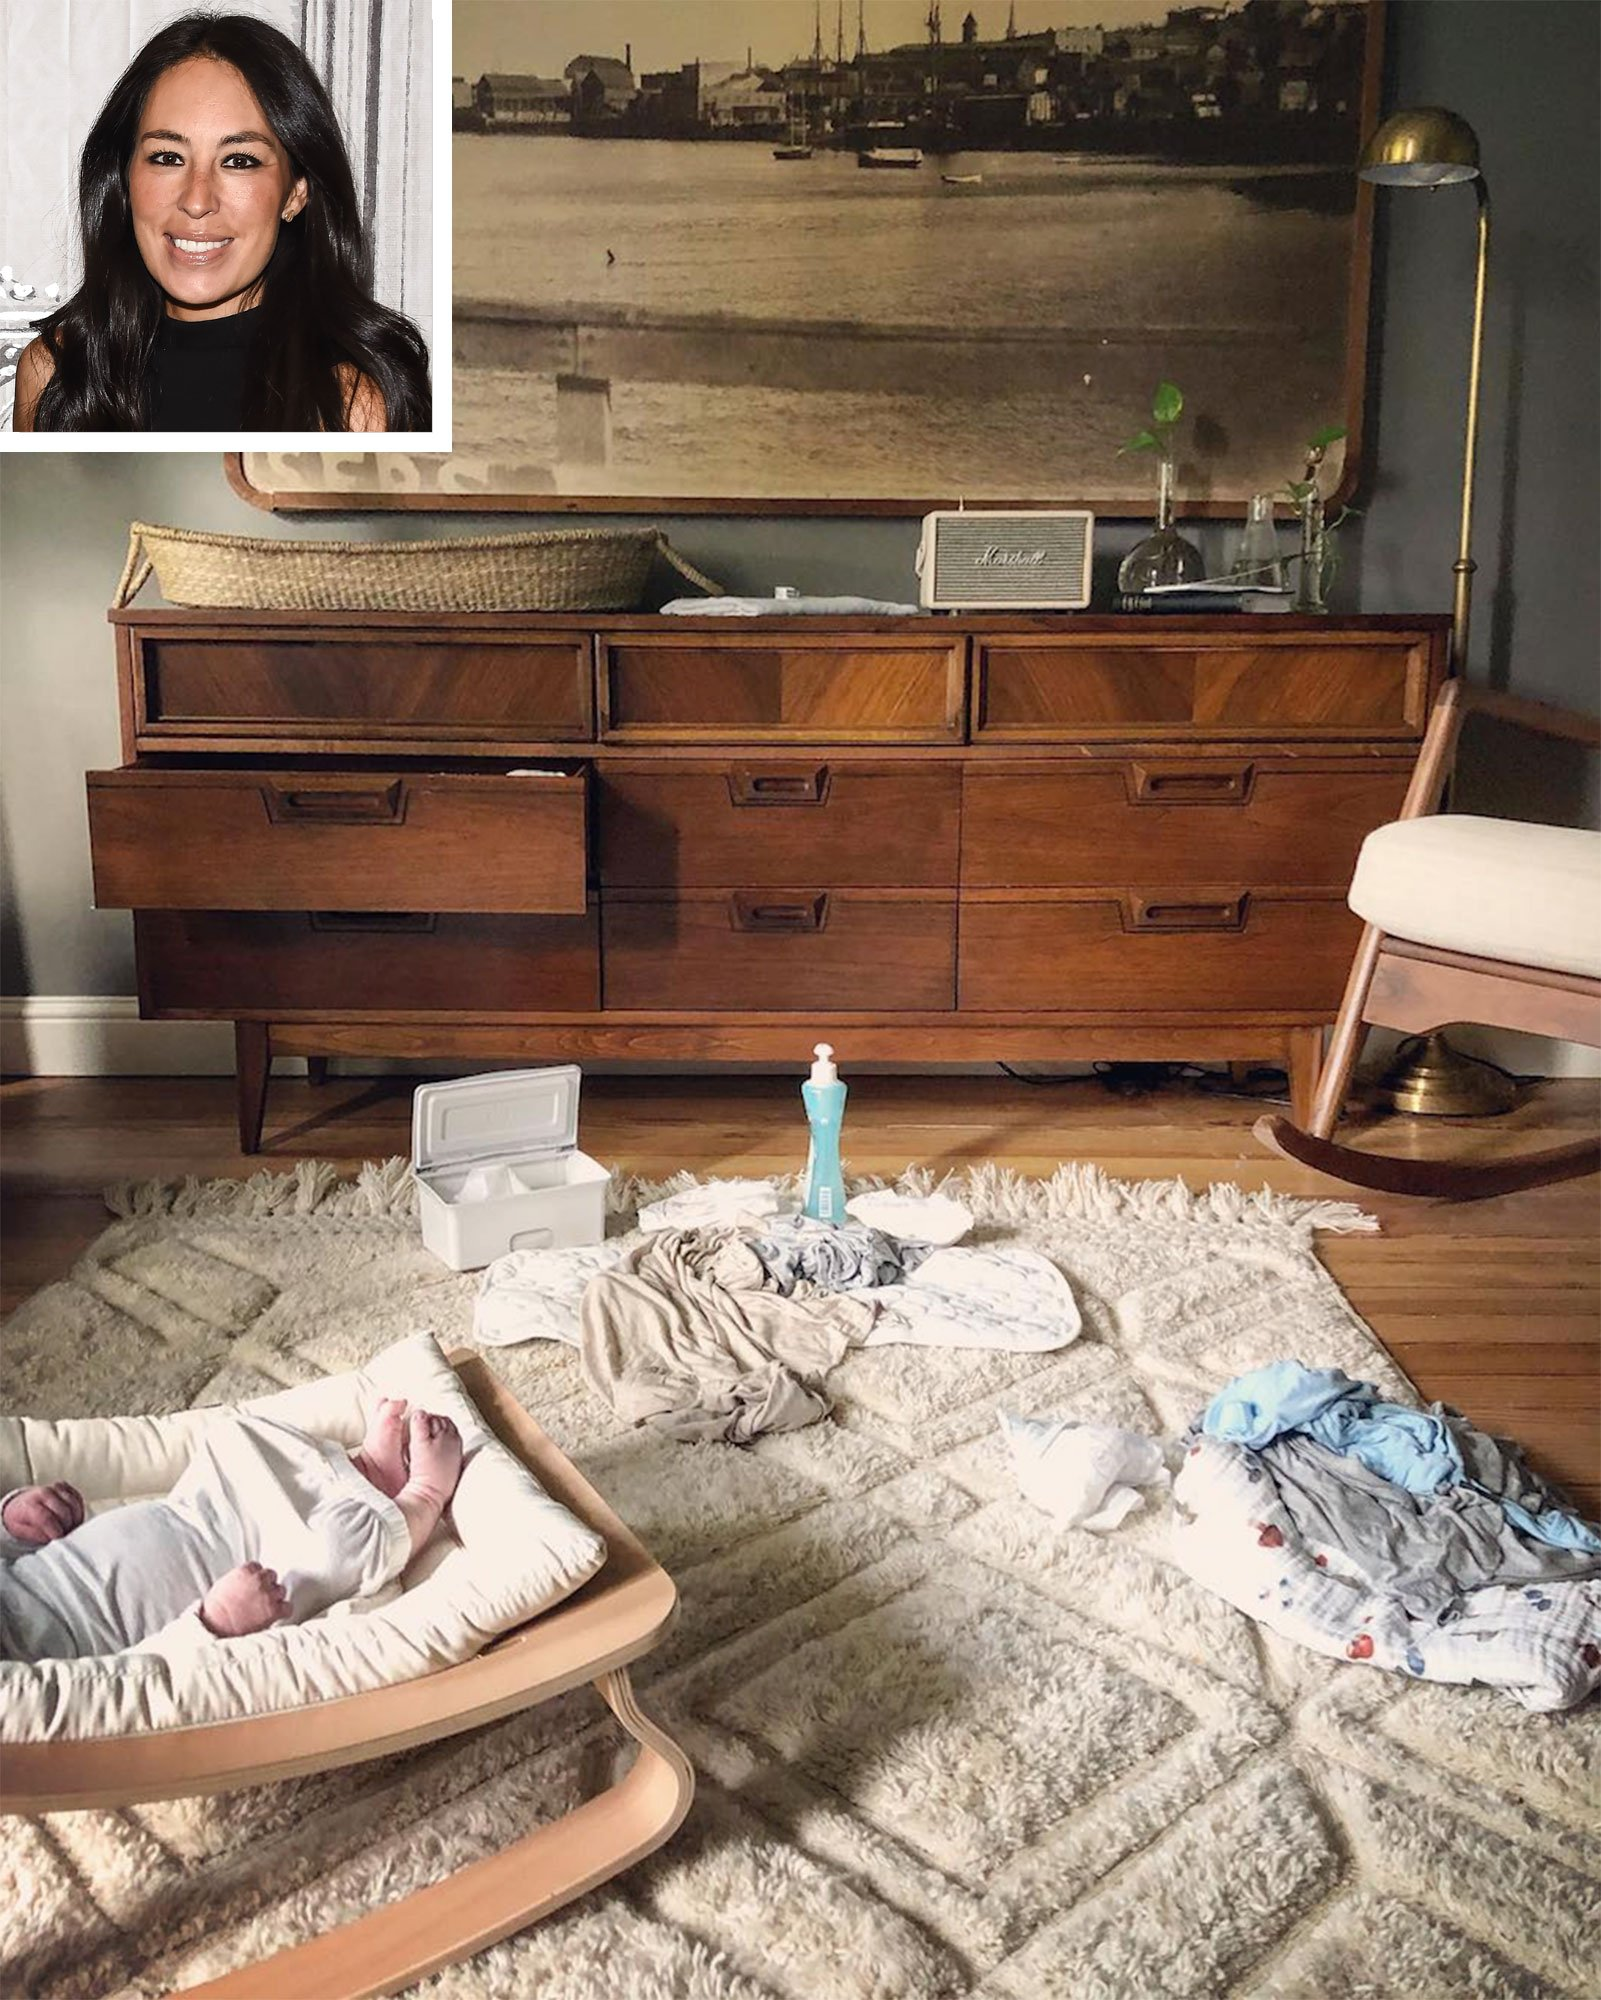 Joanna Gaines Shares Details About Where To Get Some Of